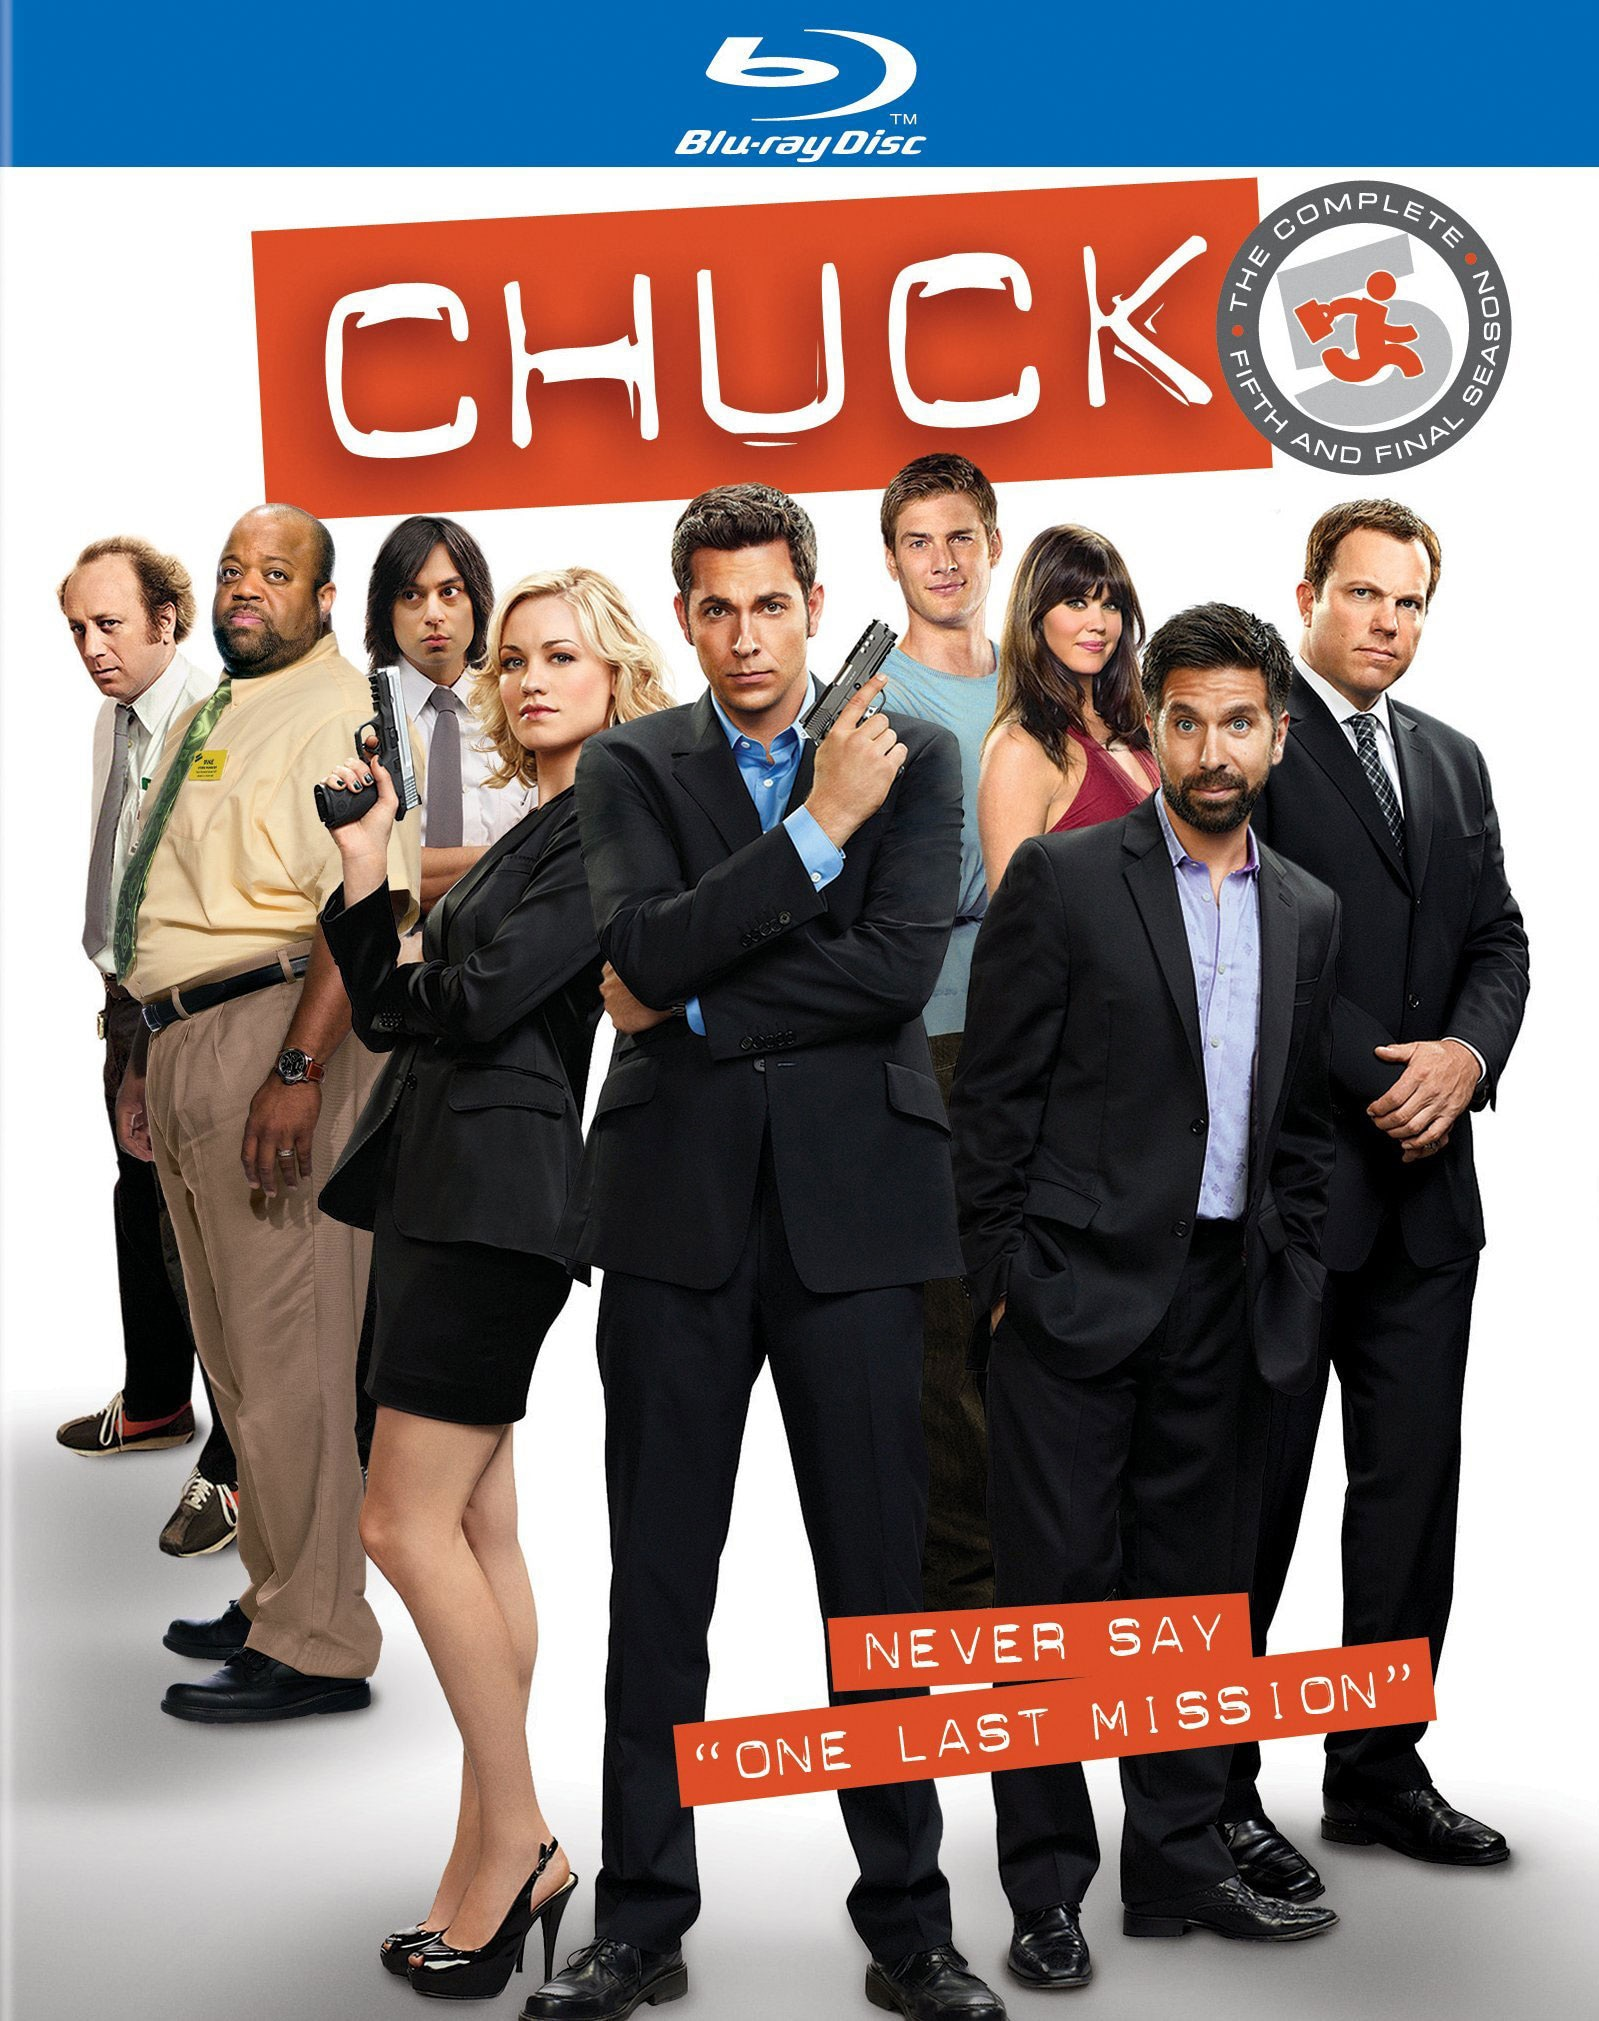 Chuck: The Complete Fifth Season (Blu-ray Disc)